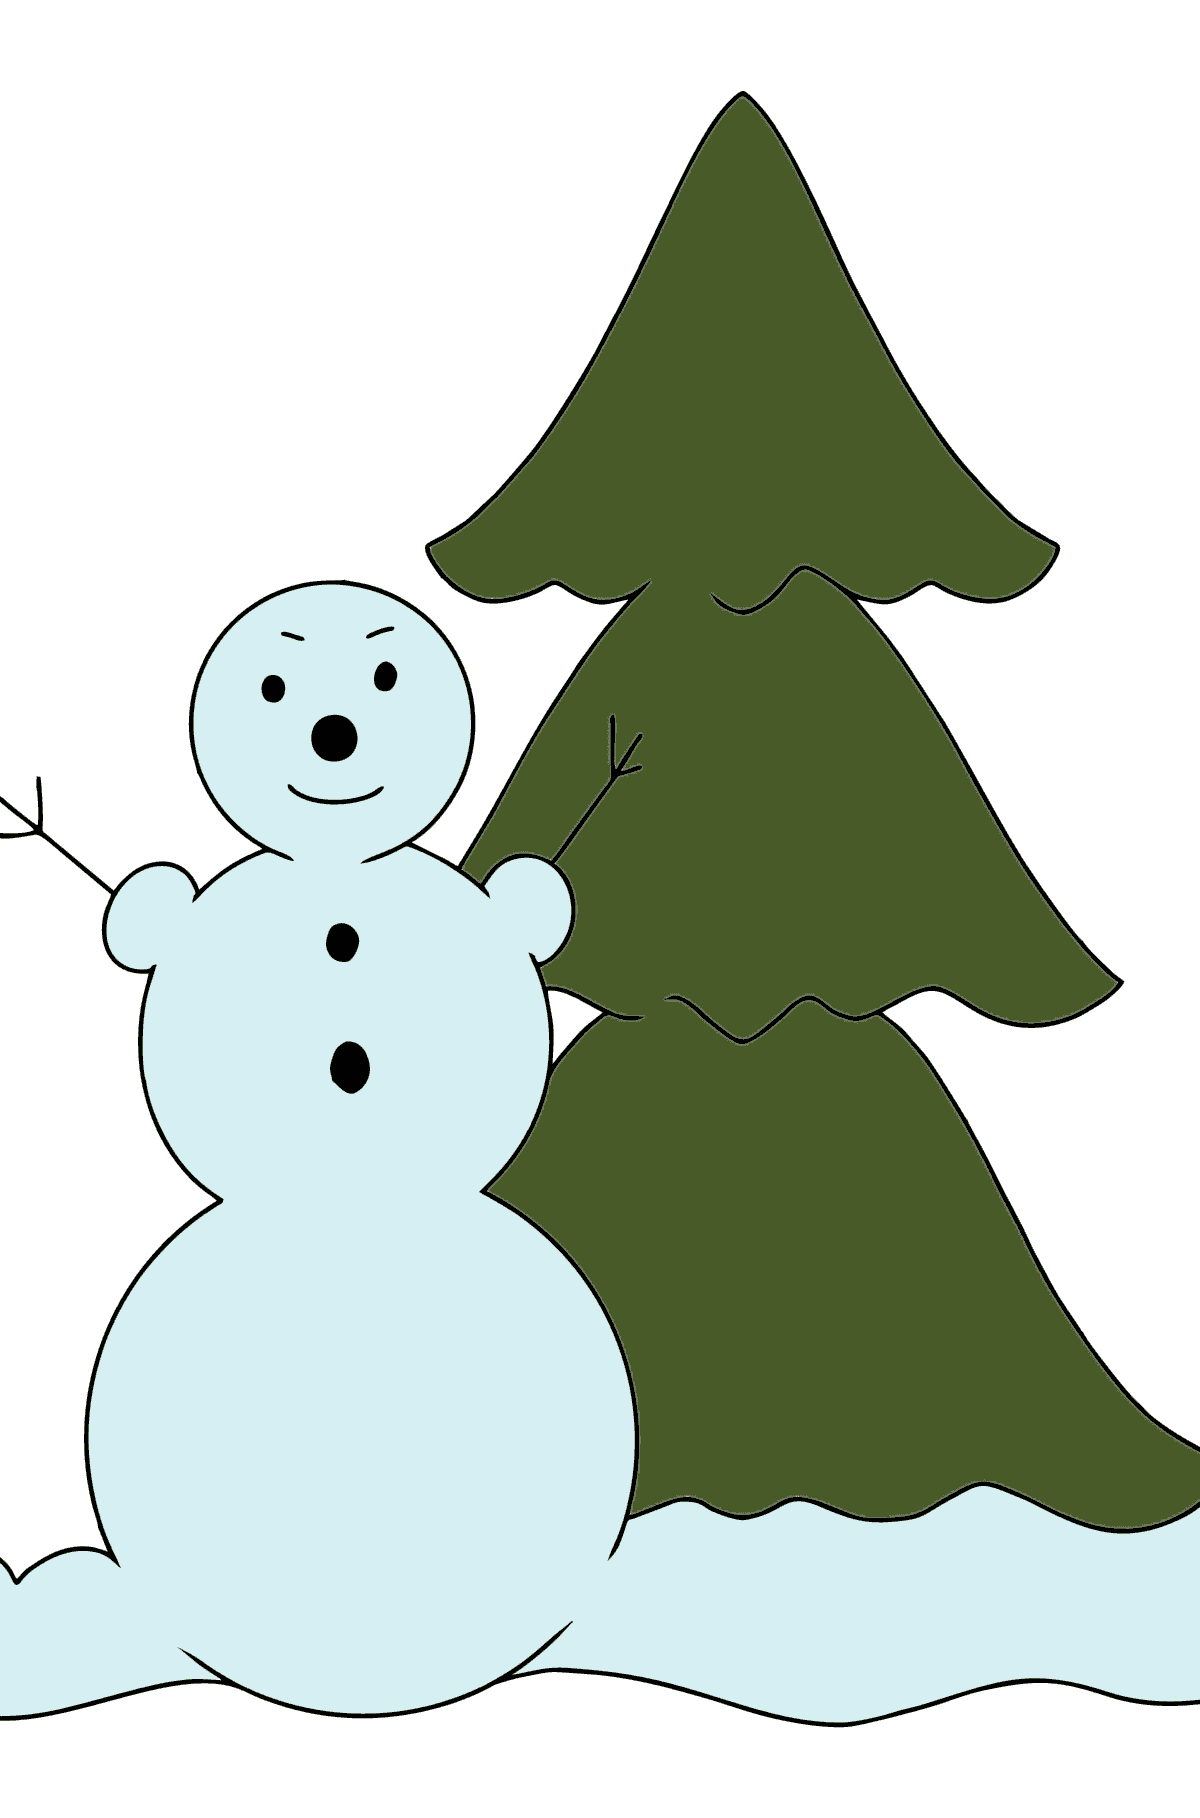 Winter Coloring Page - A Snowman for Children